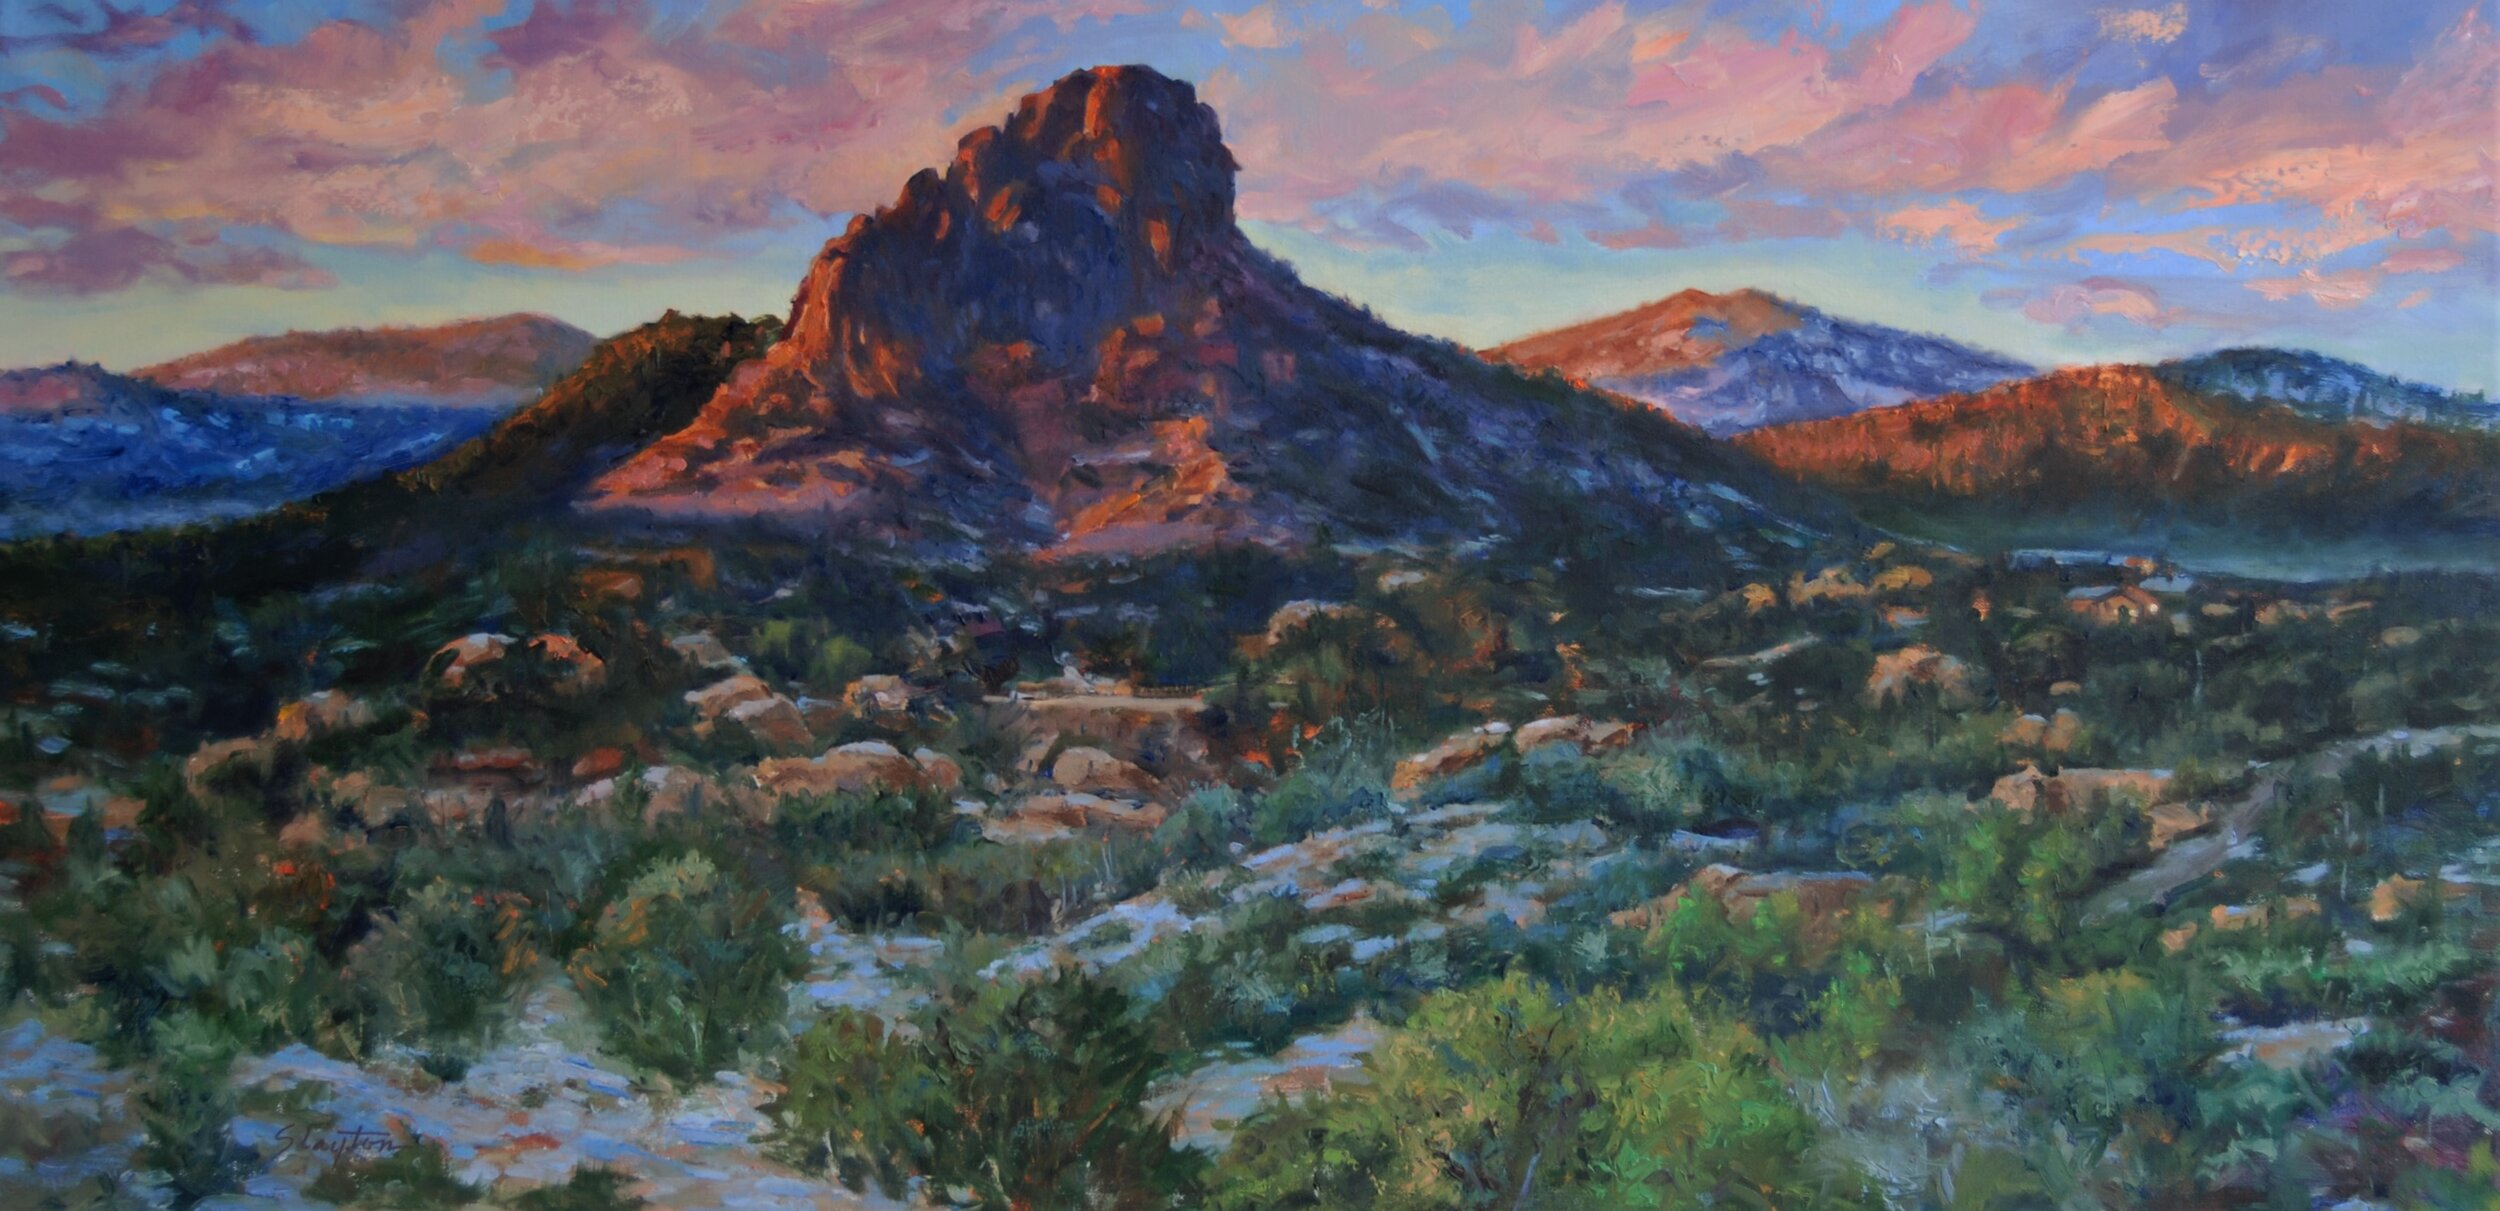 Winter Morning on Thumb Butte 24 x 48